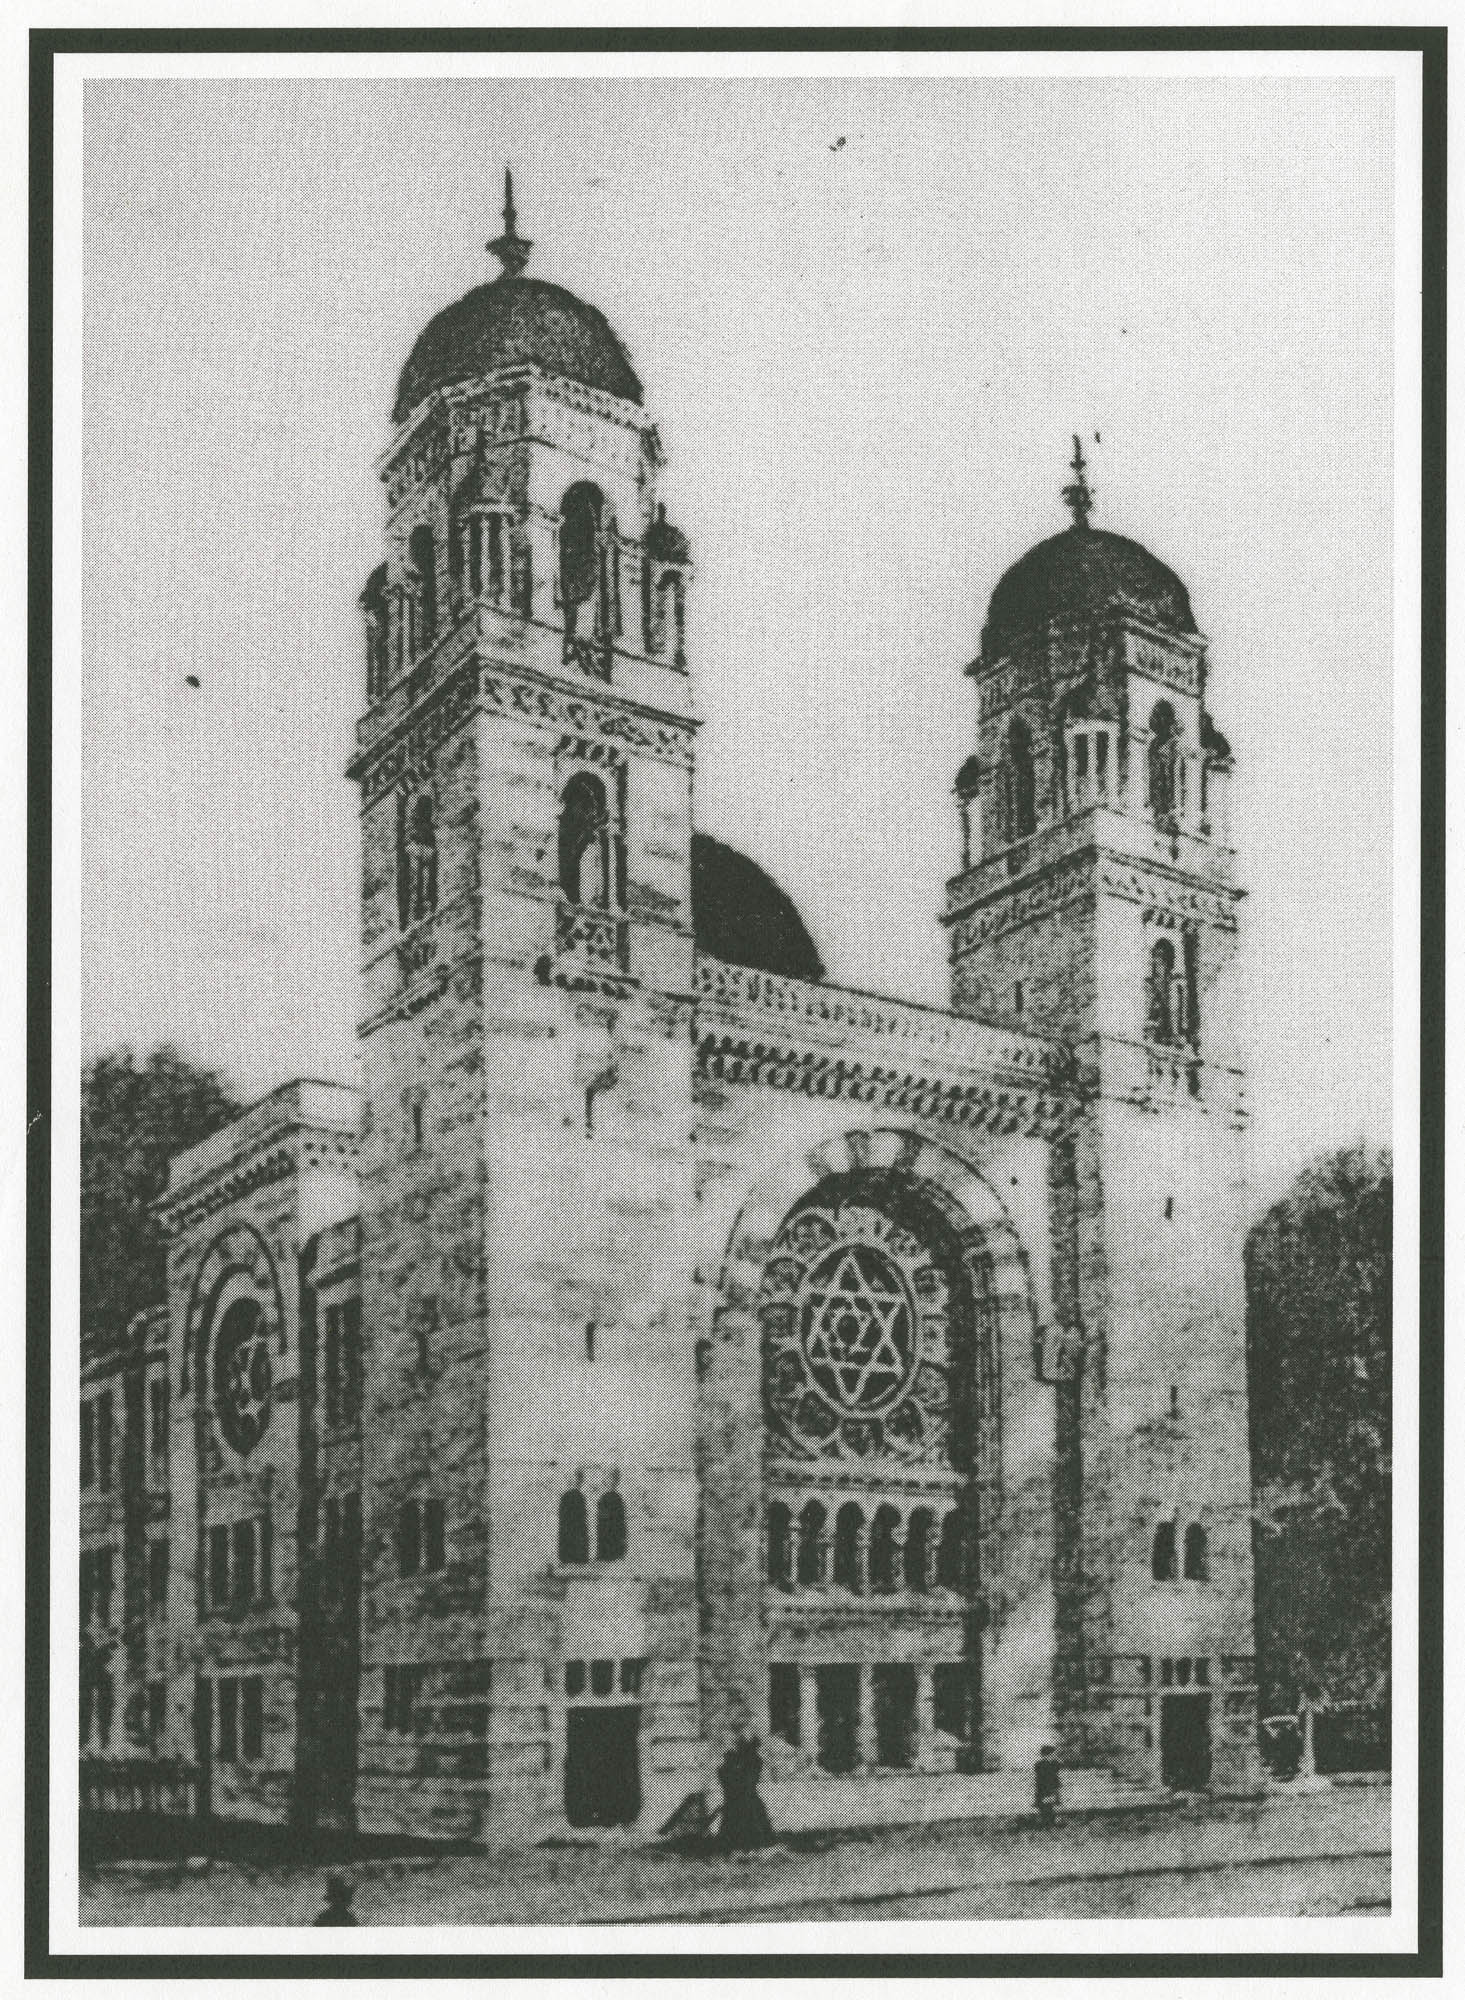 [Washington Hebrew Congregation]